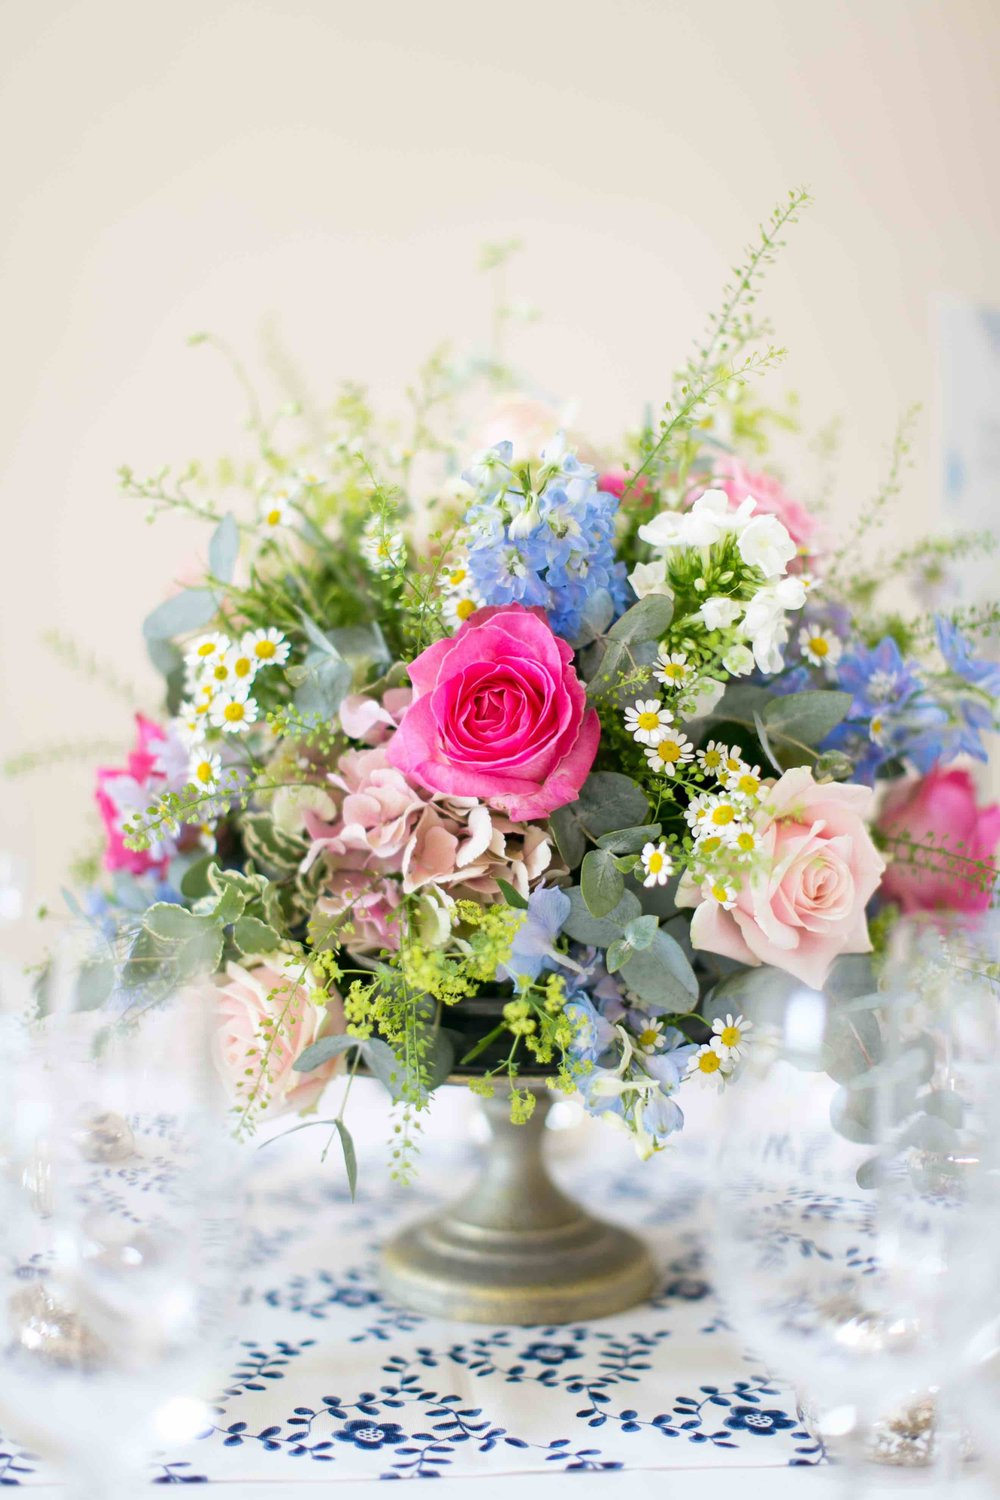 Copy of Copy of Copy of Flower centrepiece | Luxury Wedding Planner | Lamare London